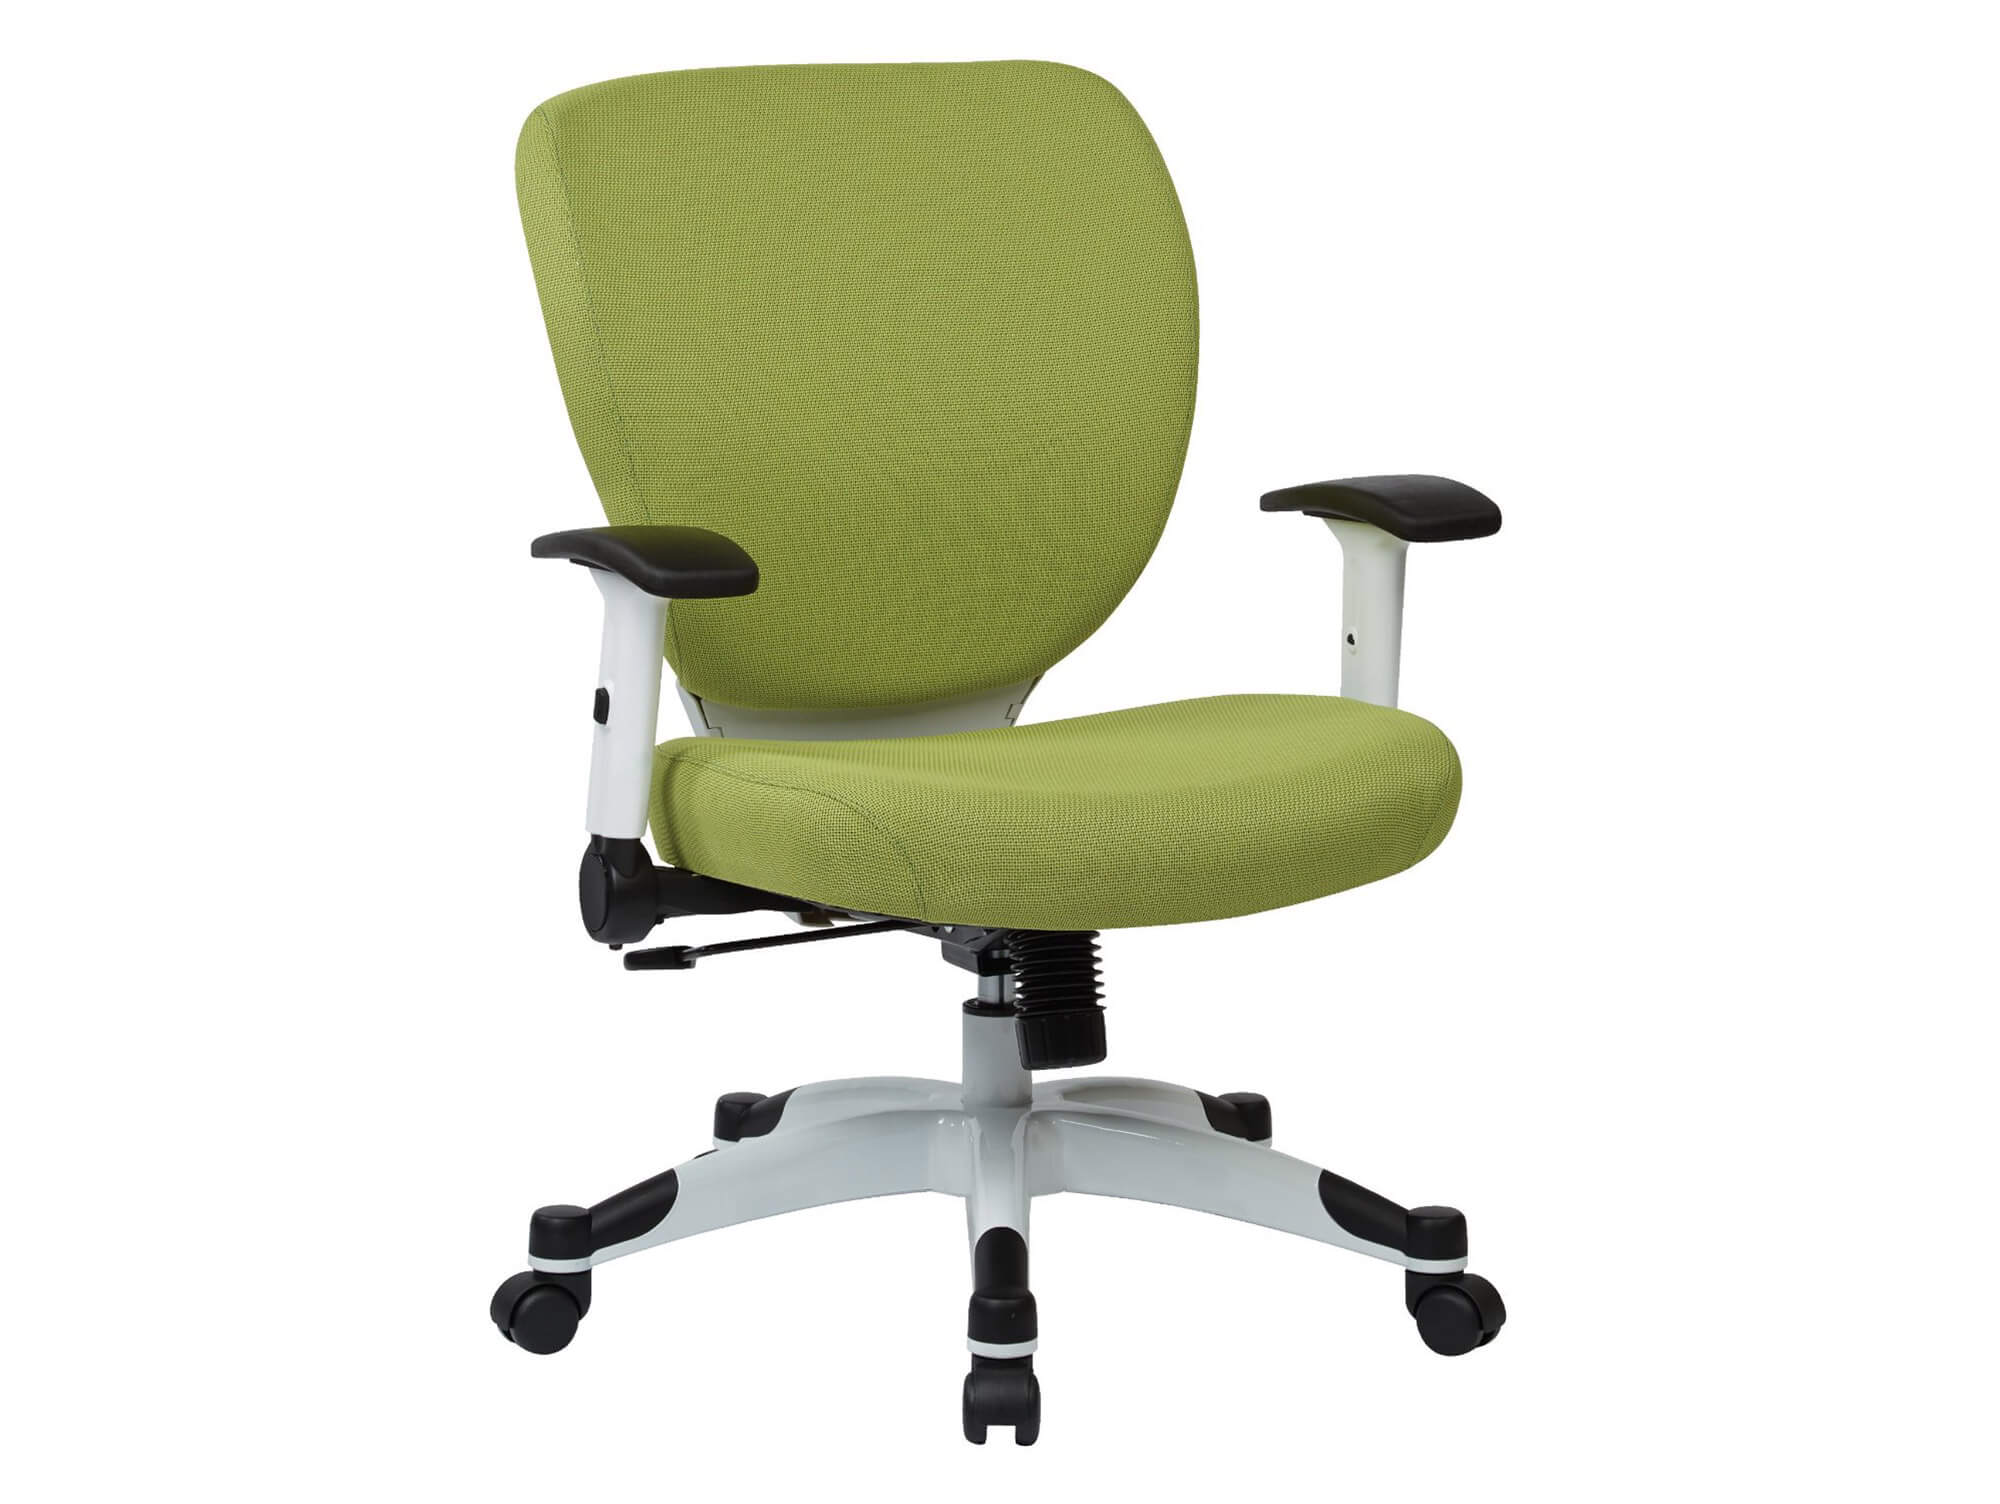 Office task chairs CUB 5200W 5879 PSO